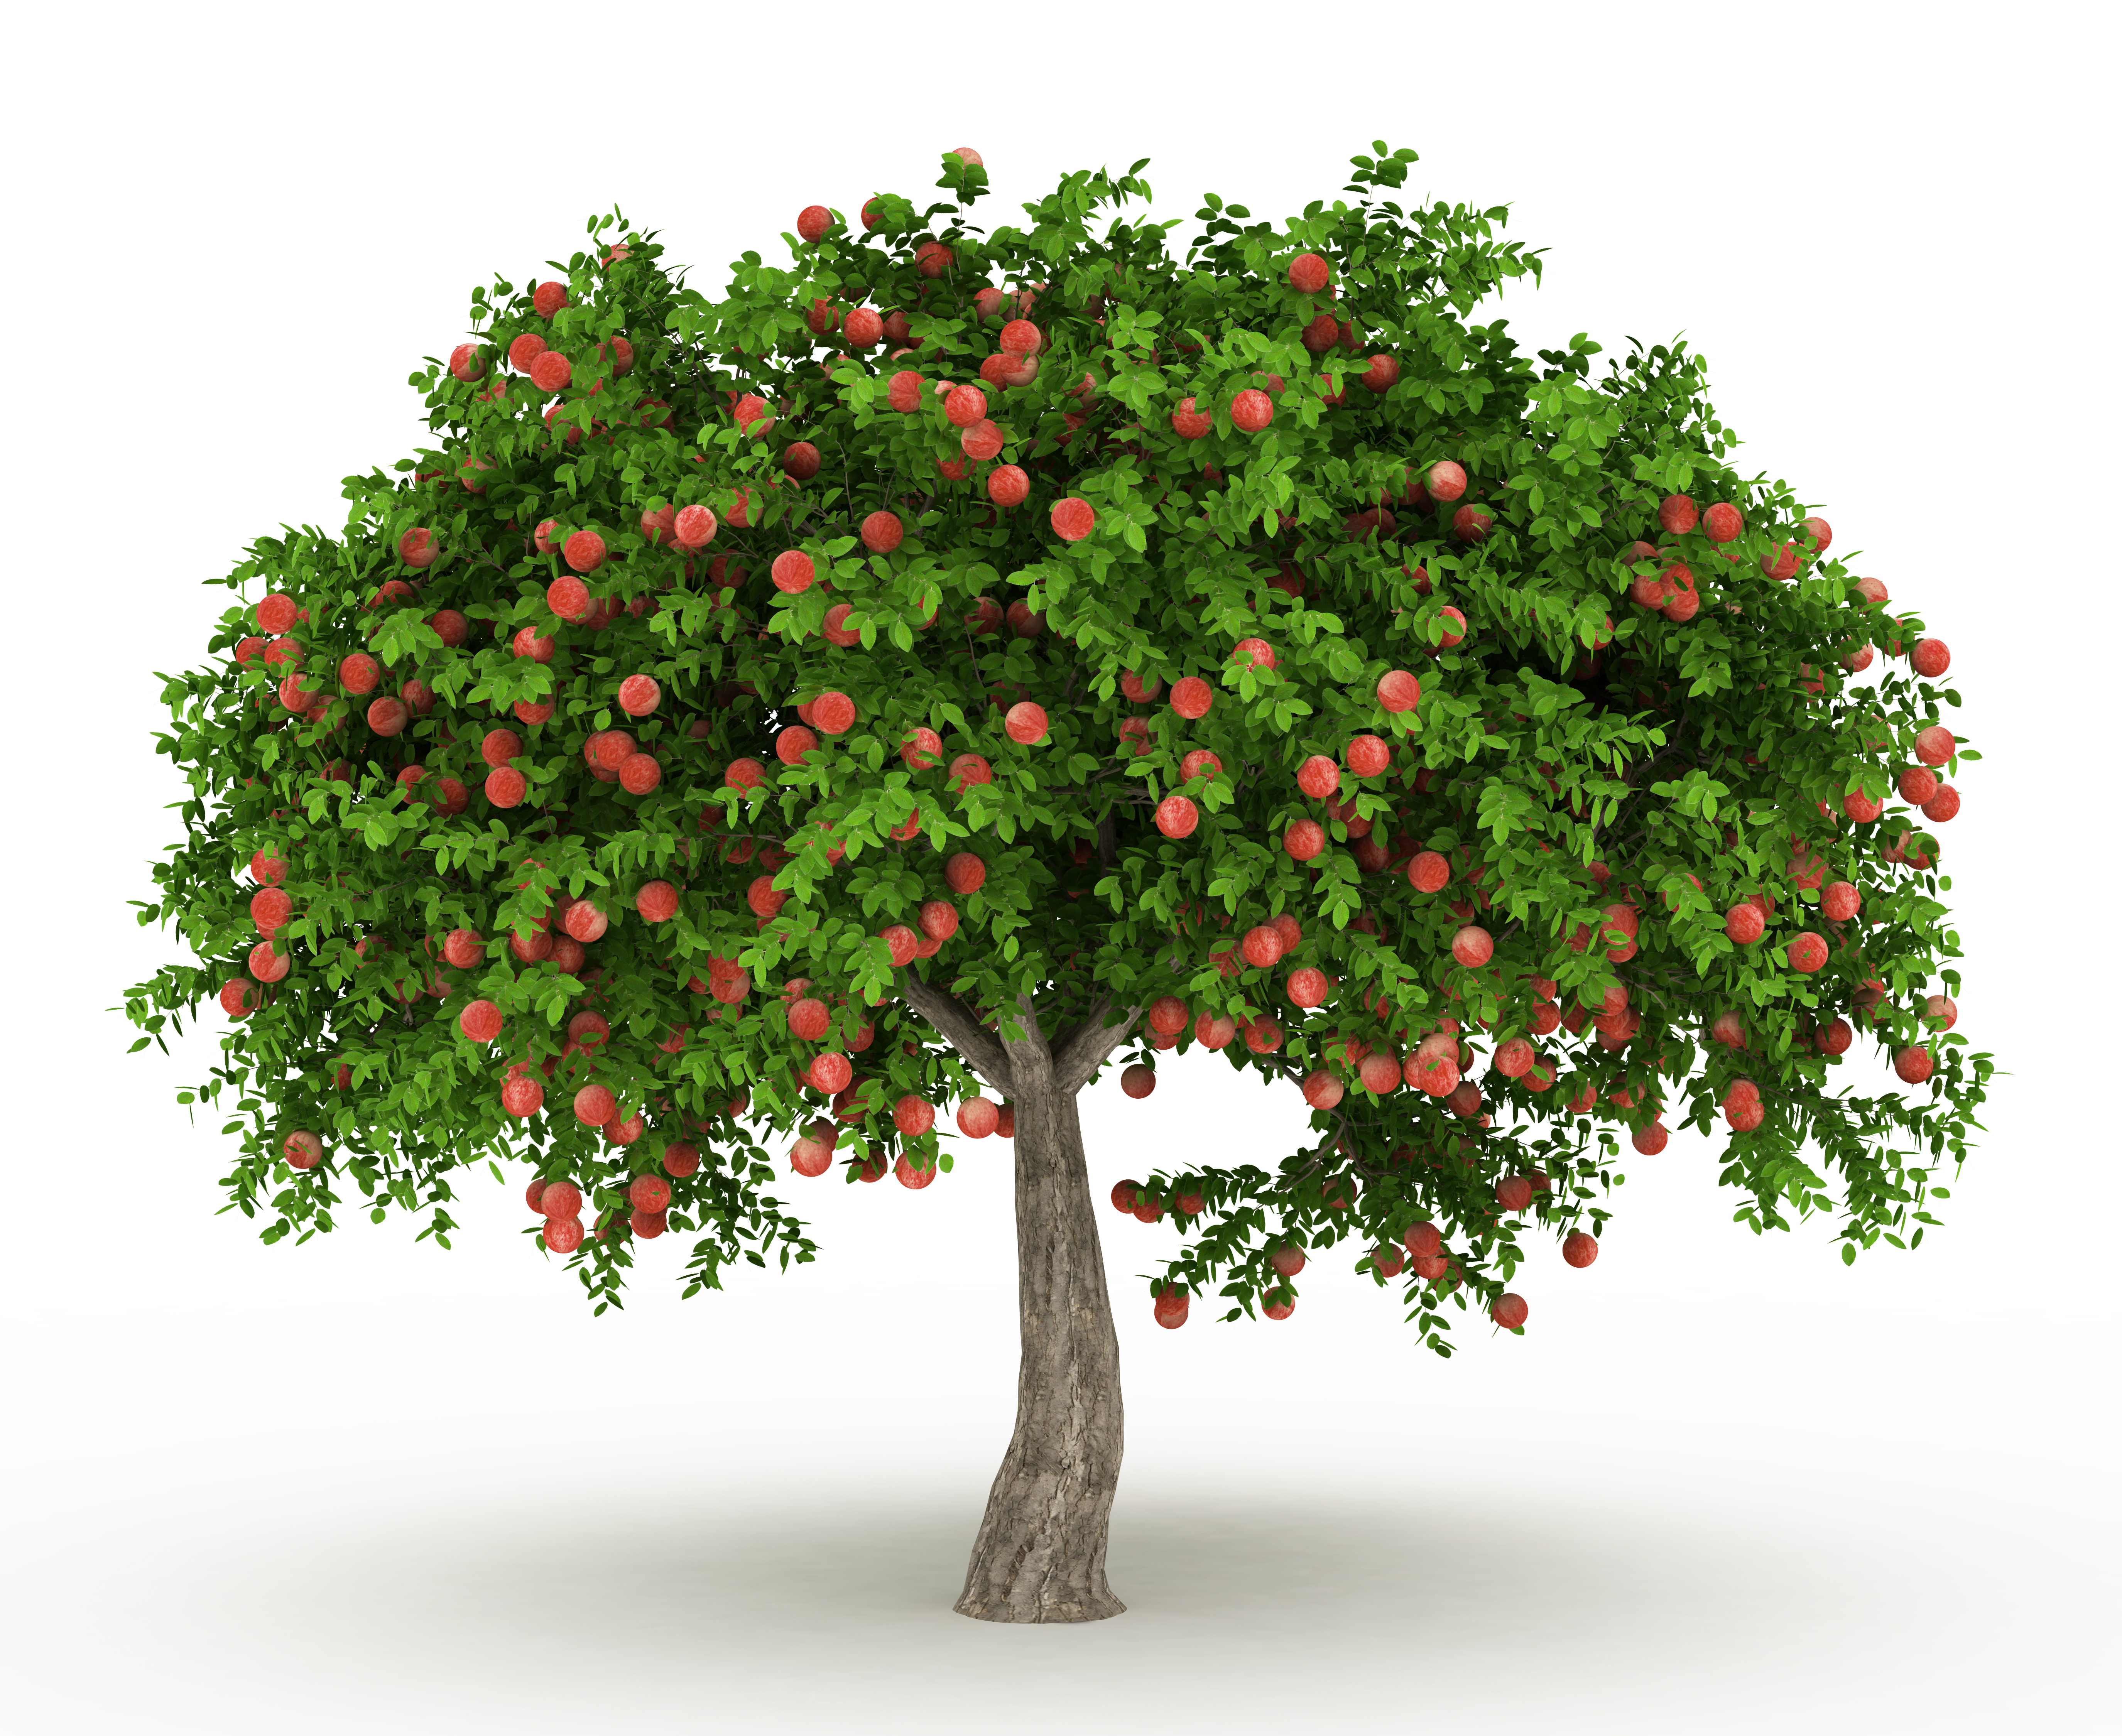 tree with fruits